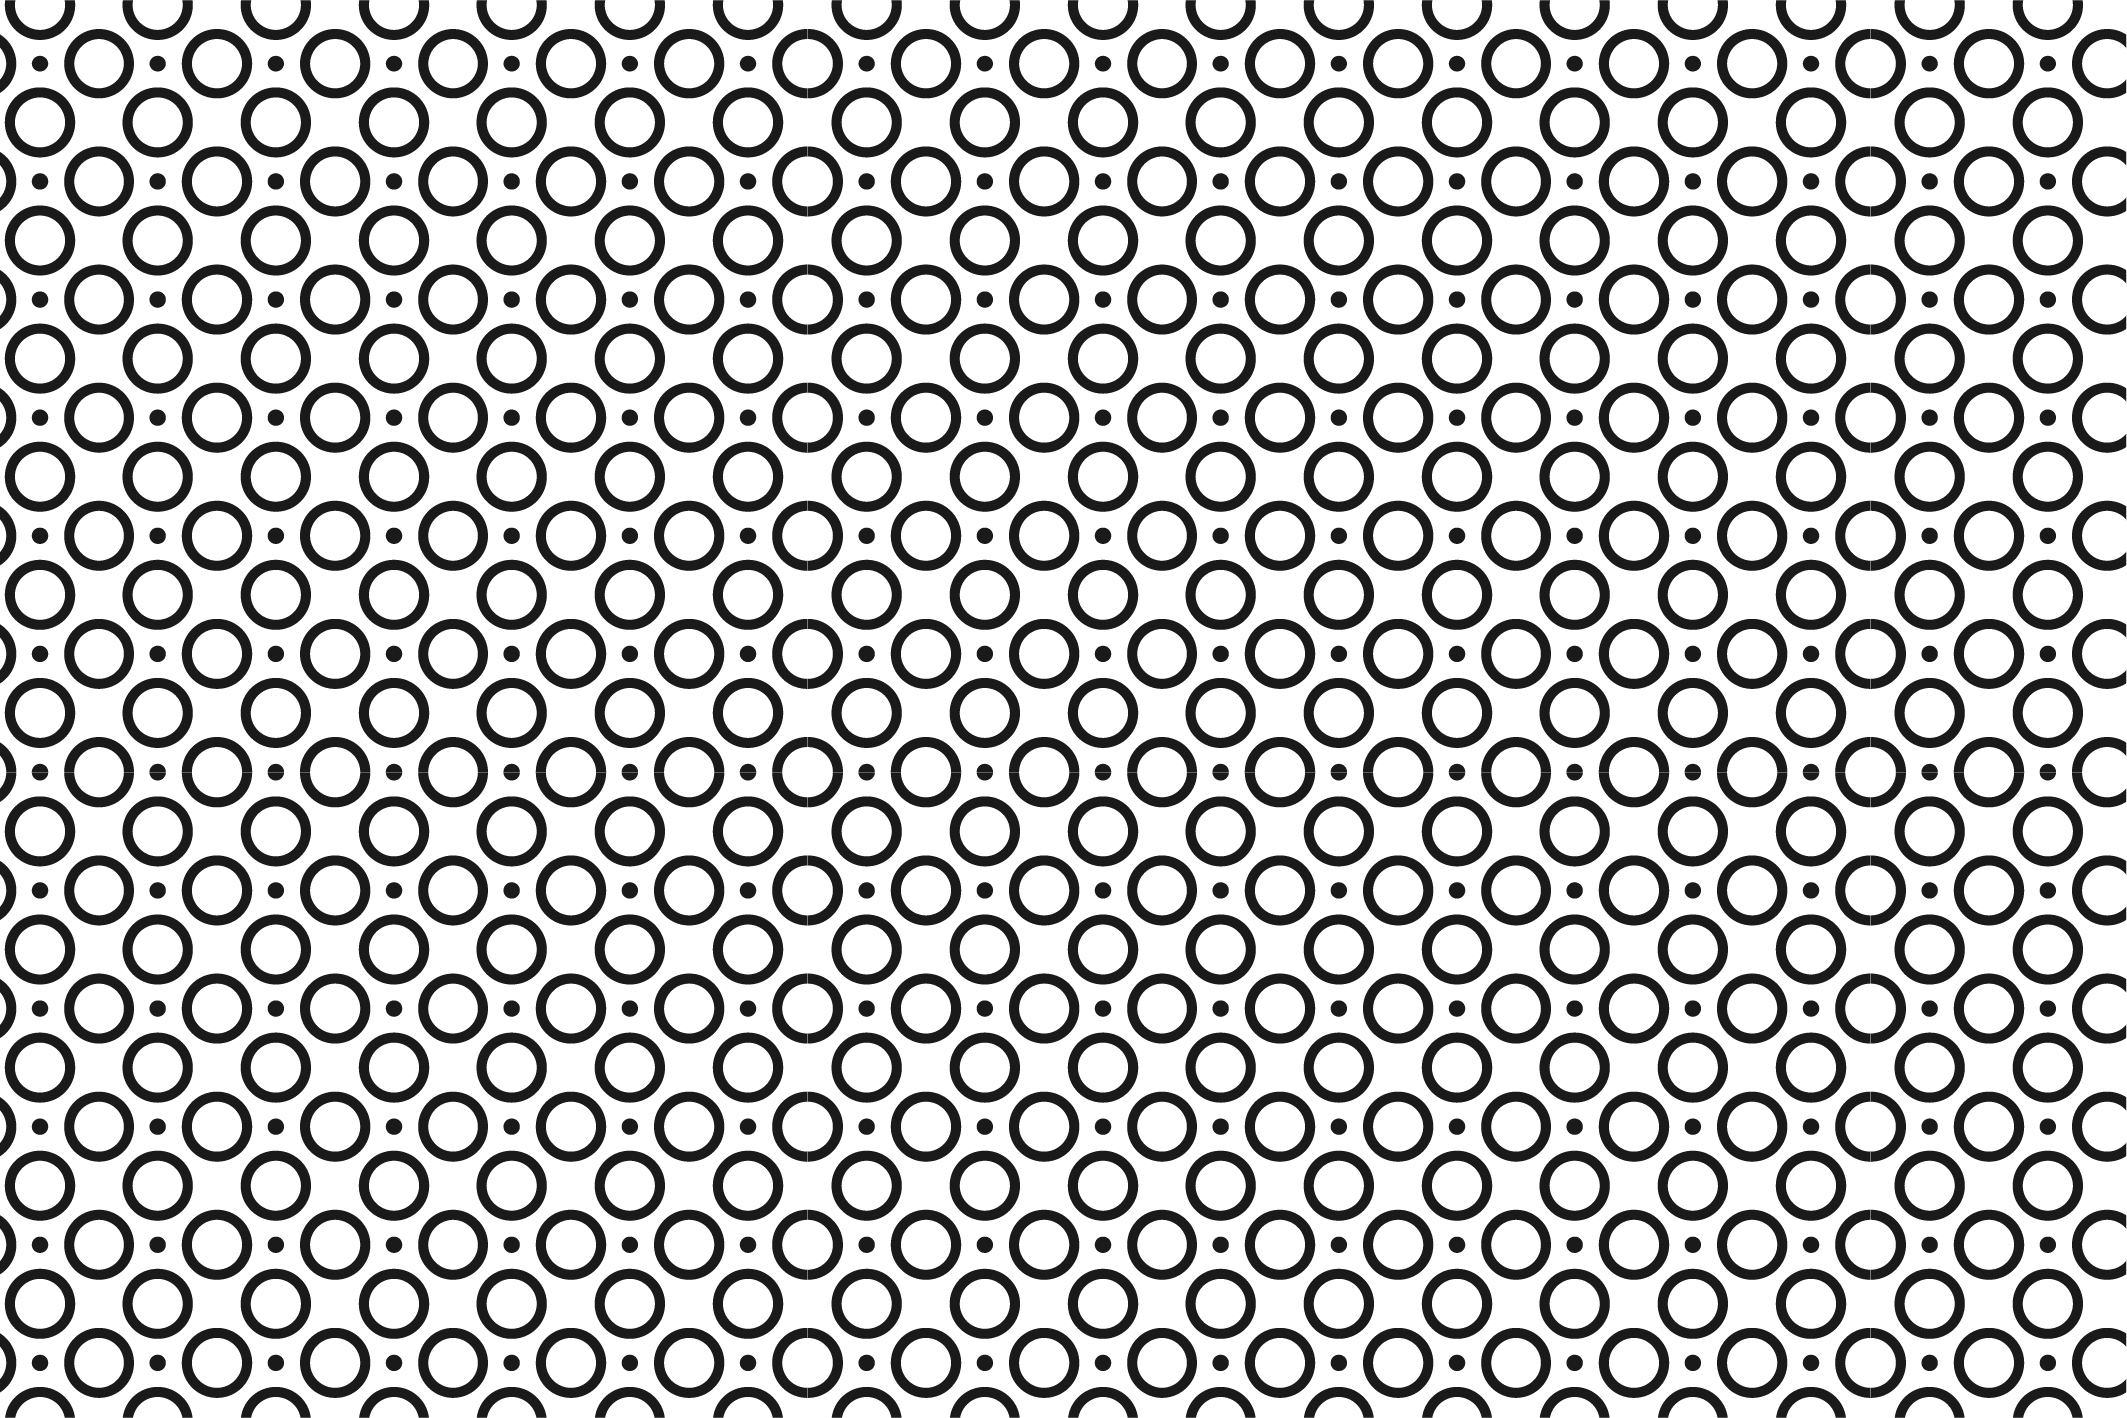 Geometric seamless patterns. B&W. example image 11